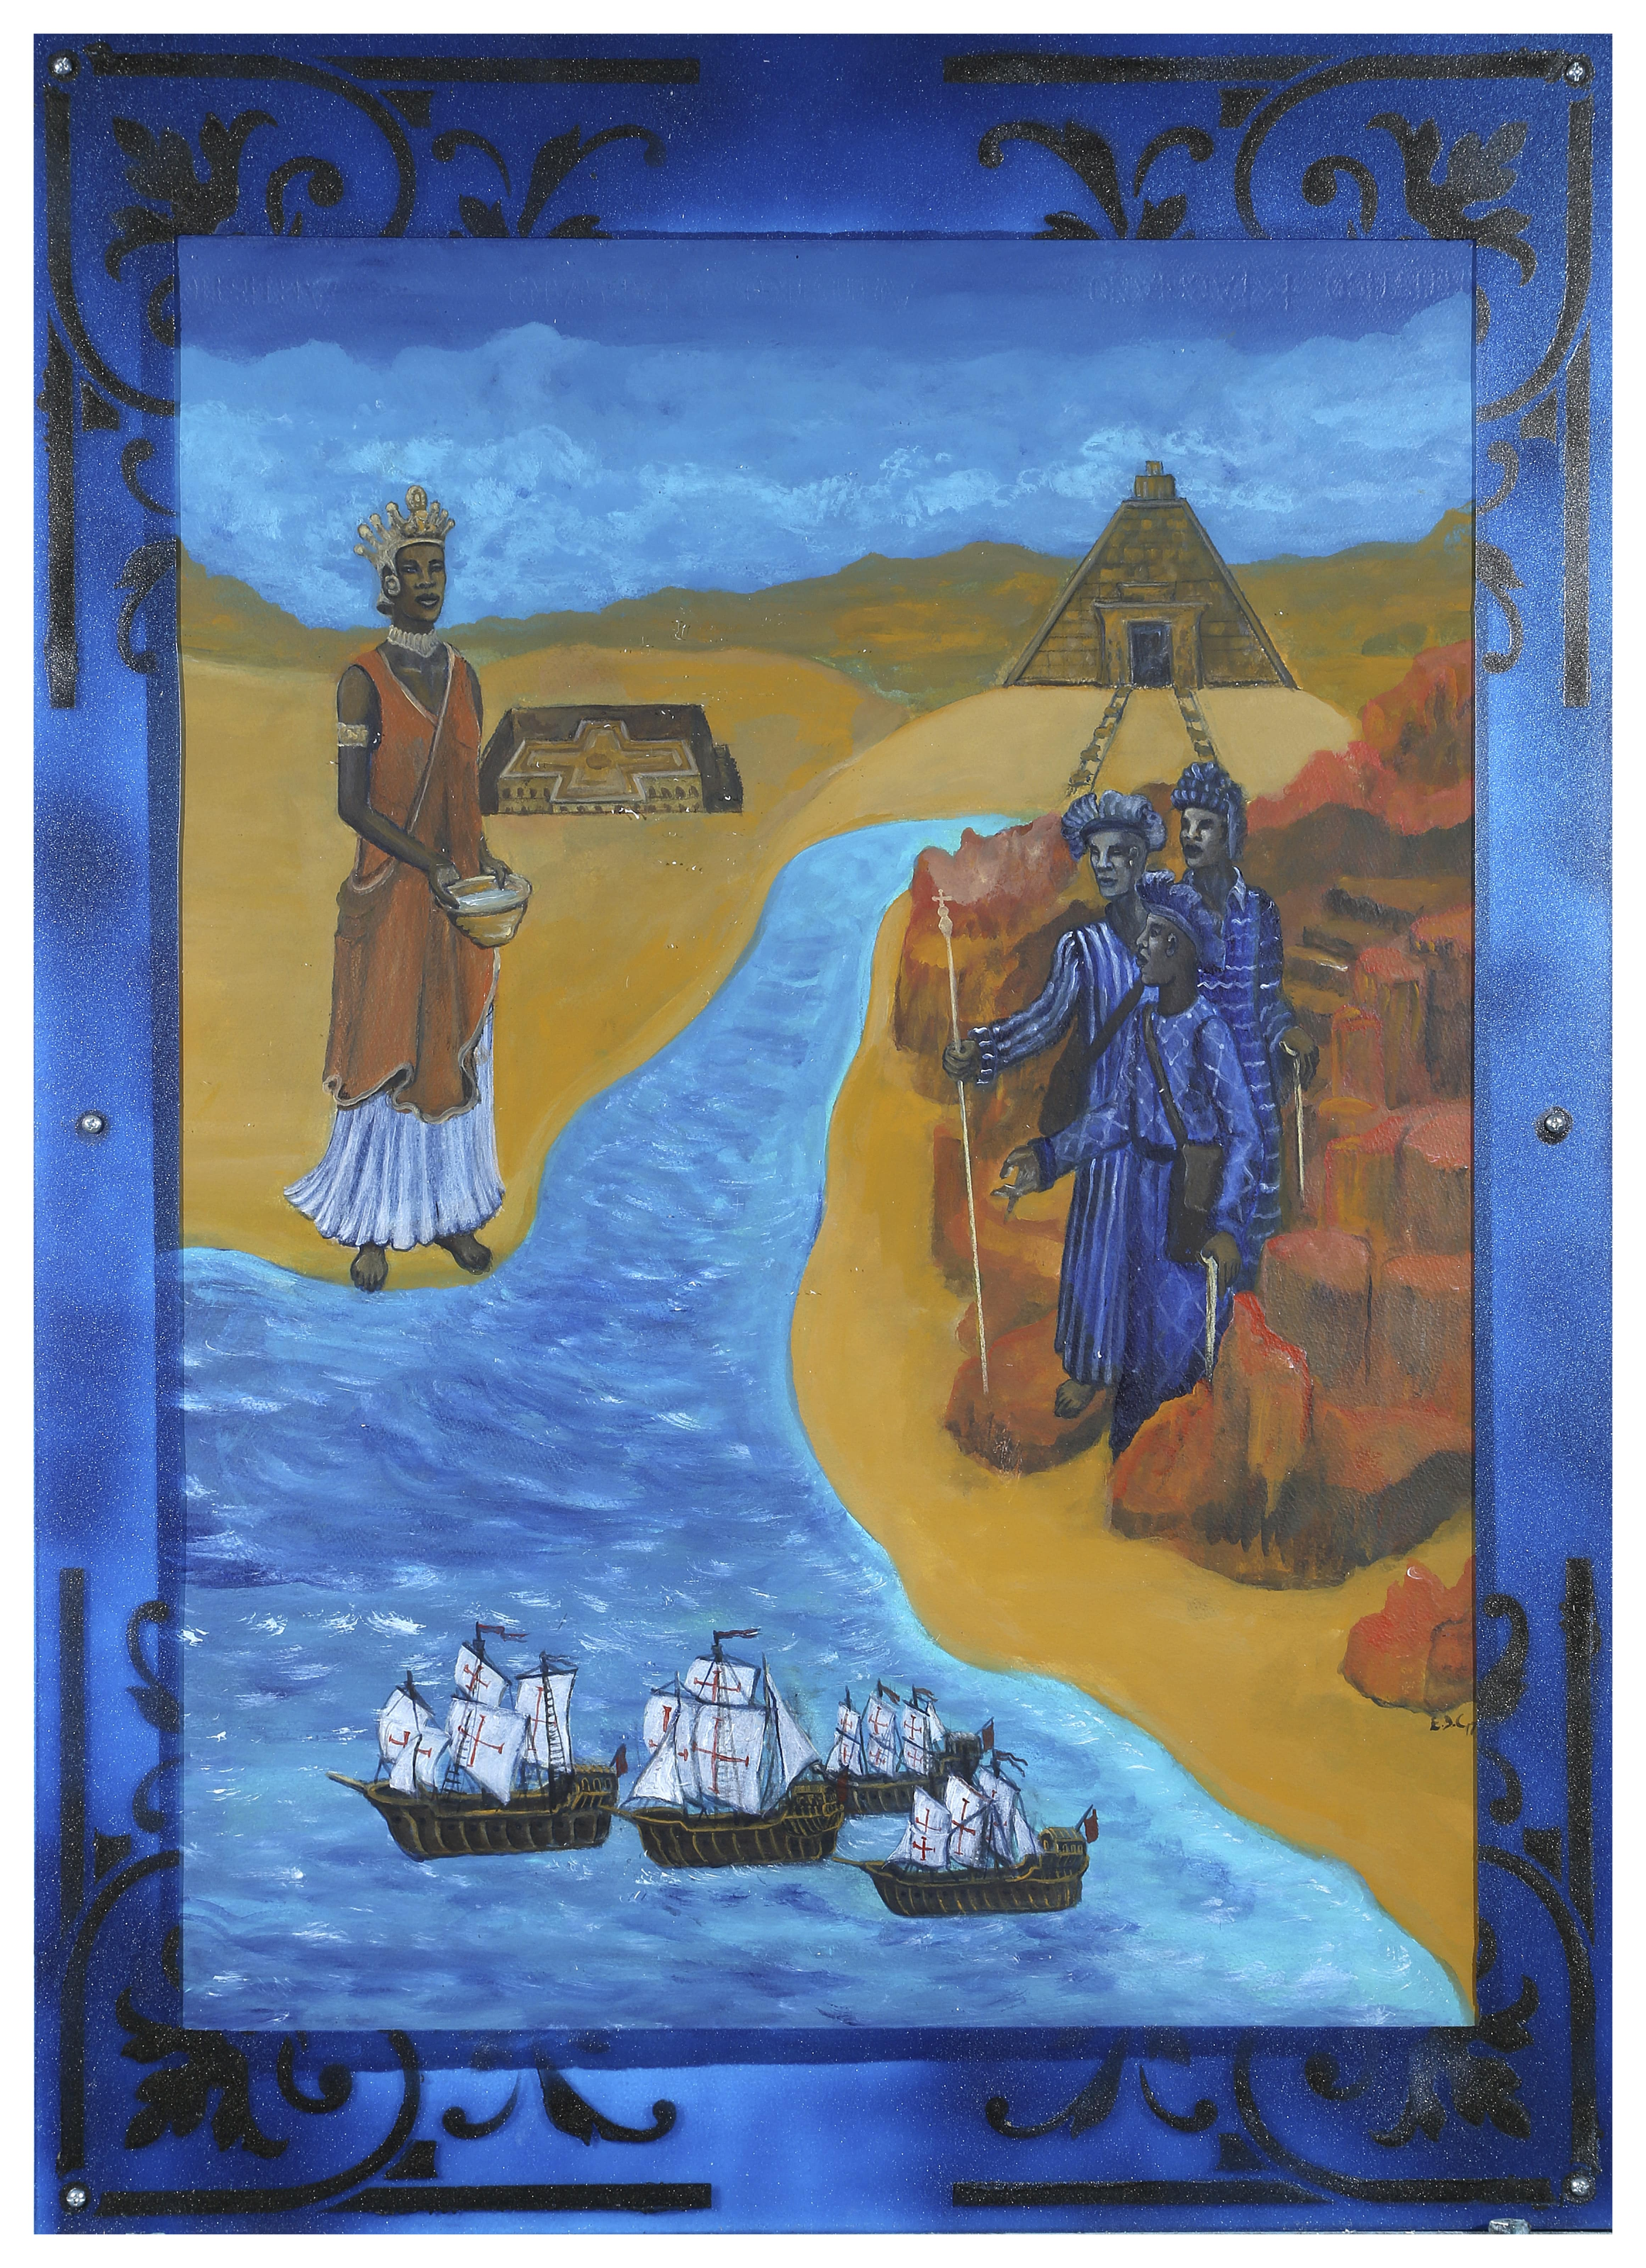 image from Exhibit | Visionary Aponte: Art and Black Freedom